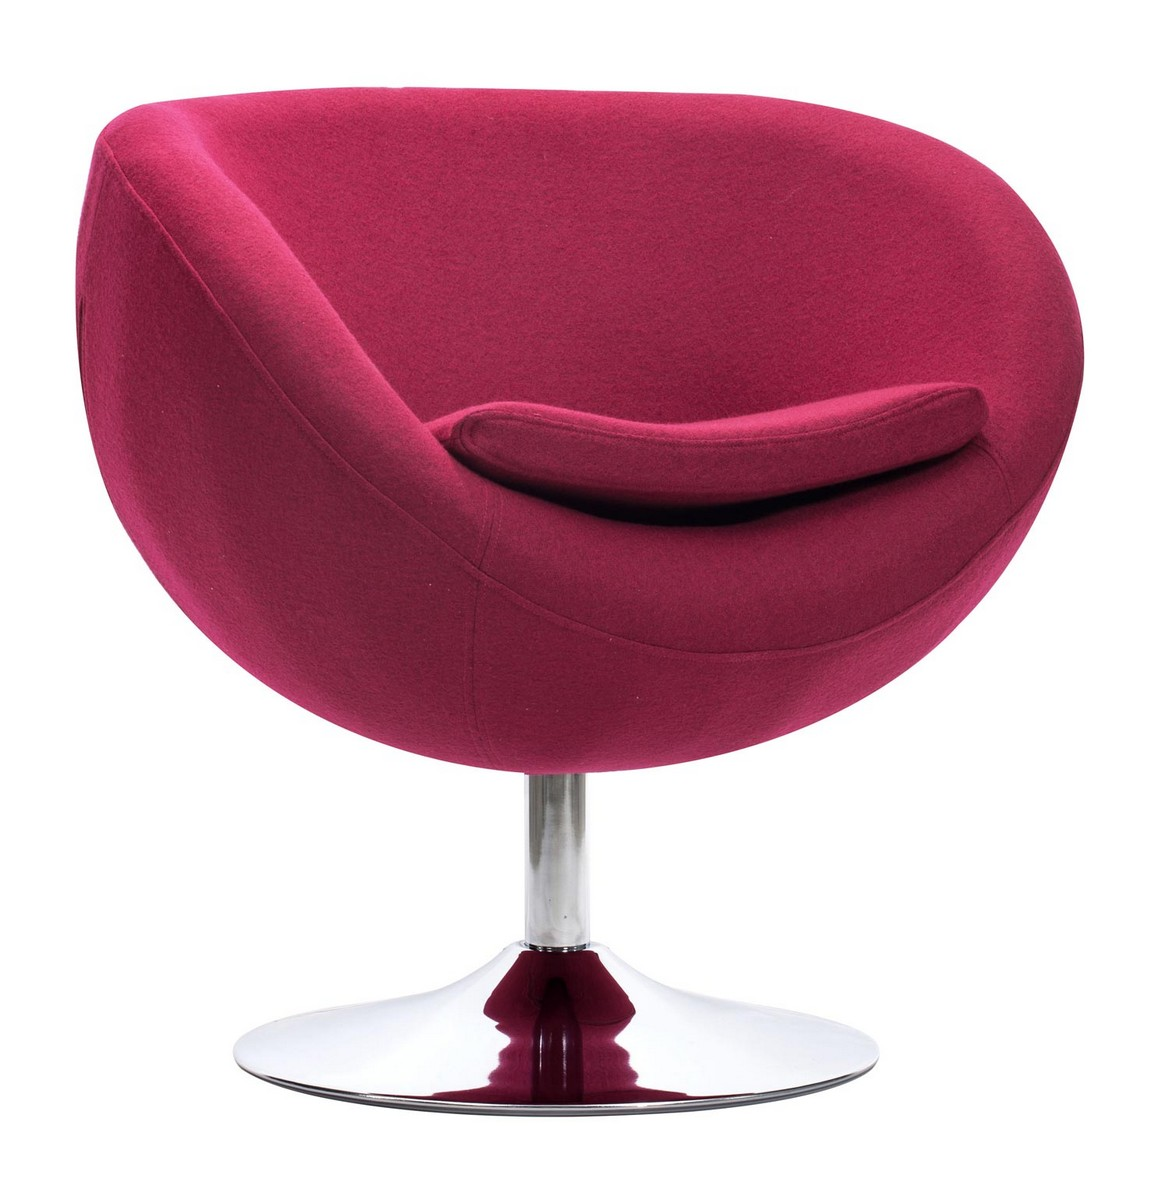 Zuo Modern Lund Occasional Chair - Carnelian Red